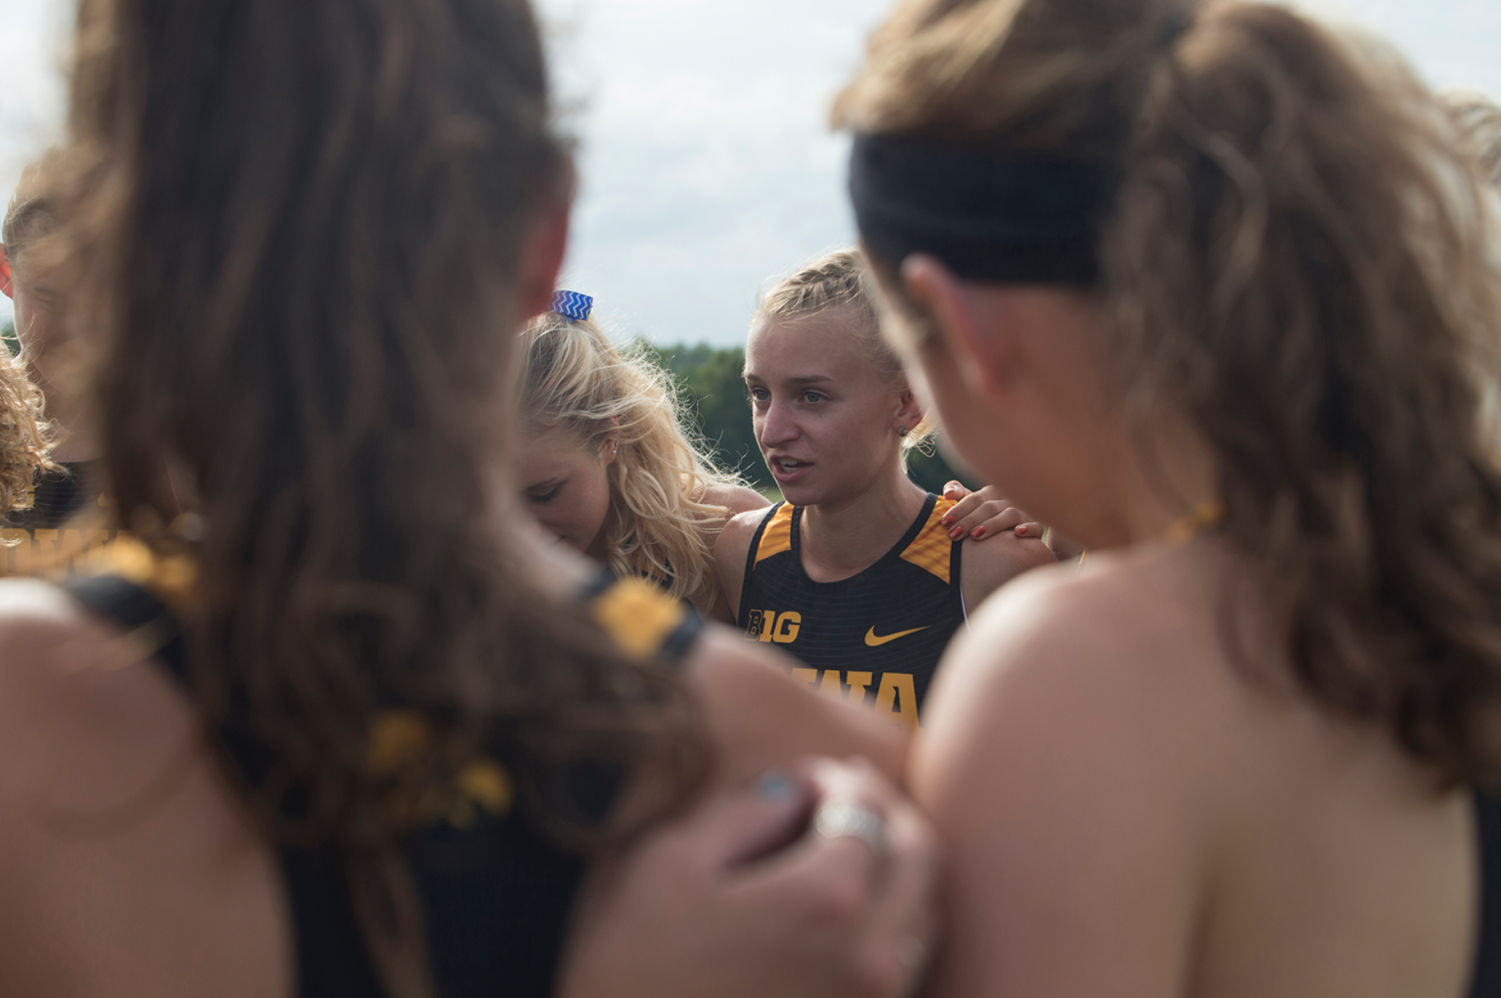 Senior Andrea Shine gives a pep talk before the Hawkeye Invitational at Ashton Cross Country course on Friday, Aug. 31, 2018. The Hawkeyes were defeated by Iowa State 24-56. Andrea Shine placed first in the Women's 4K with a time of 14:07.5.